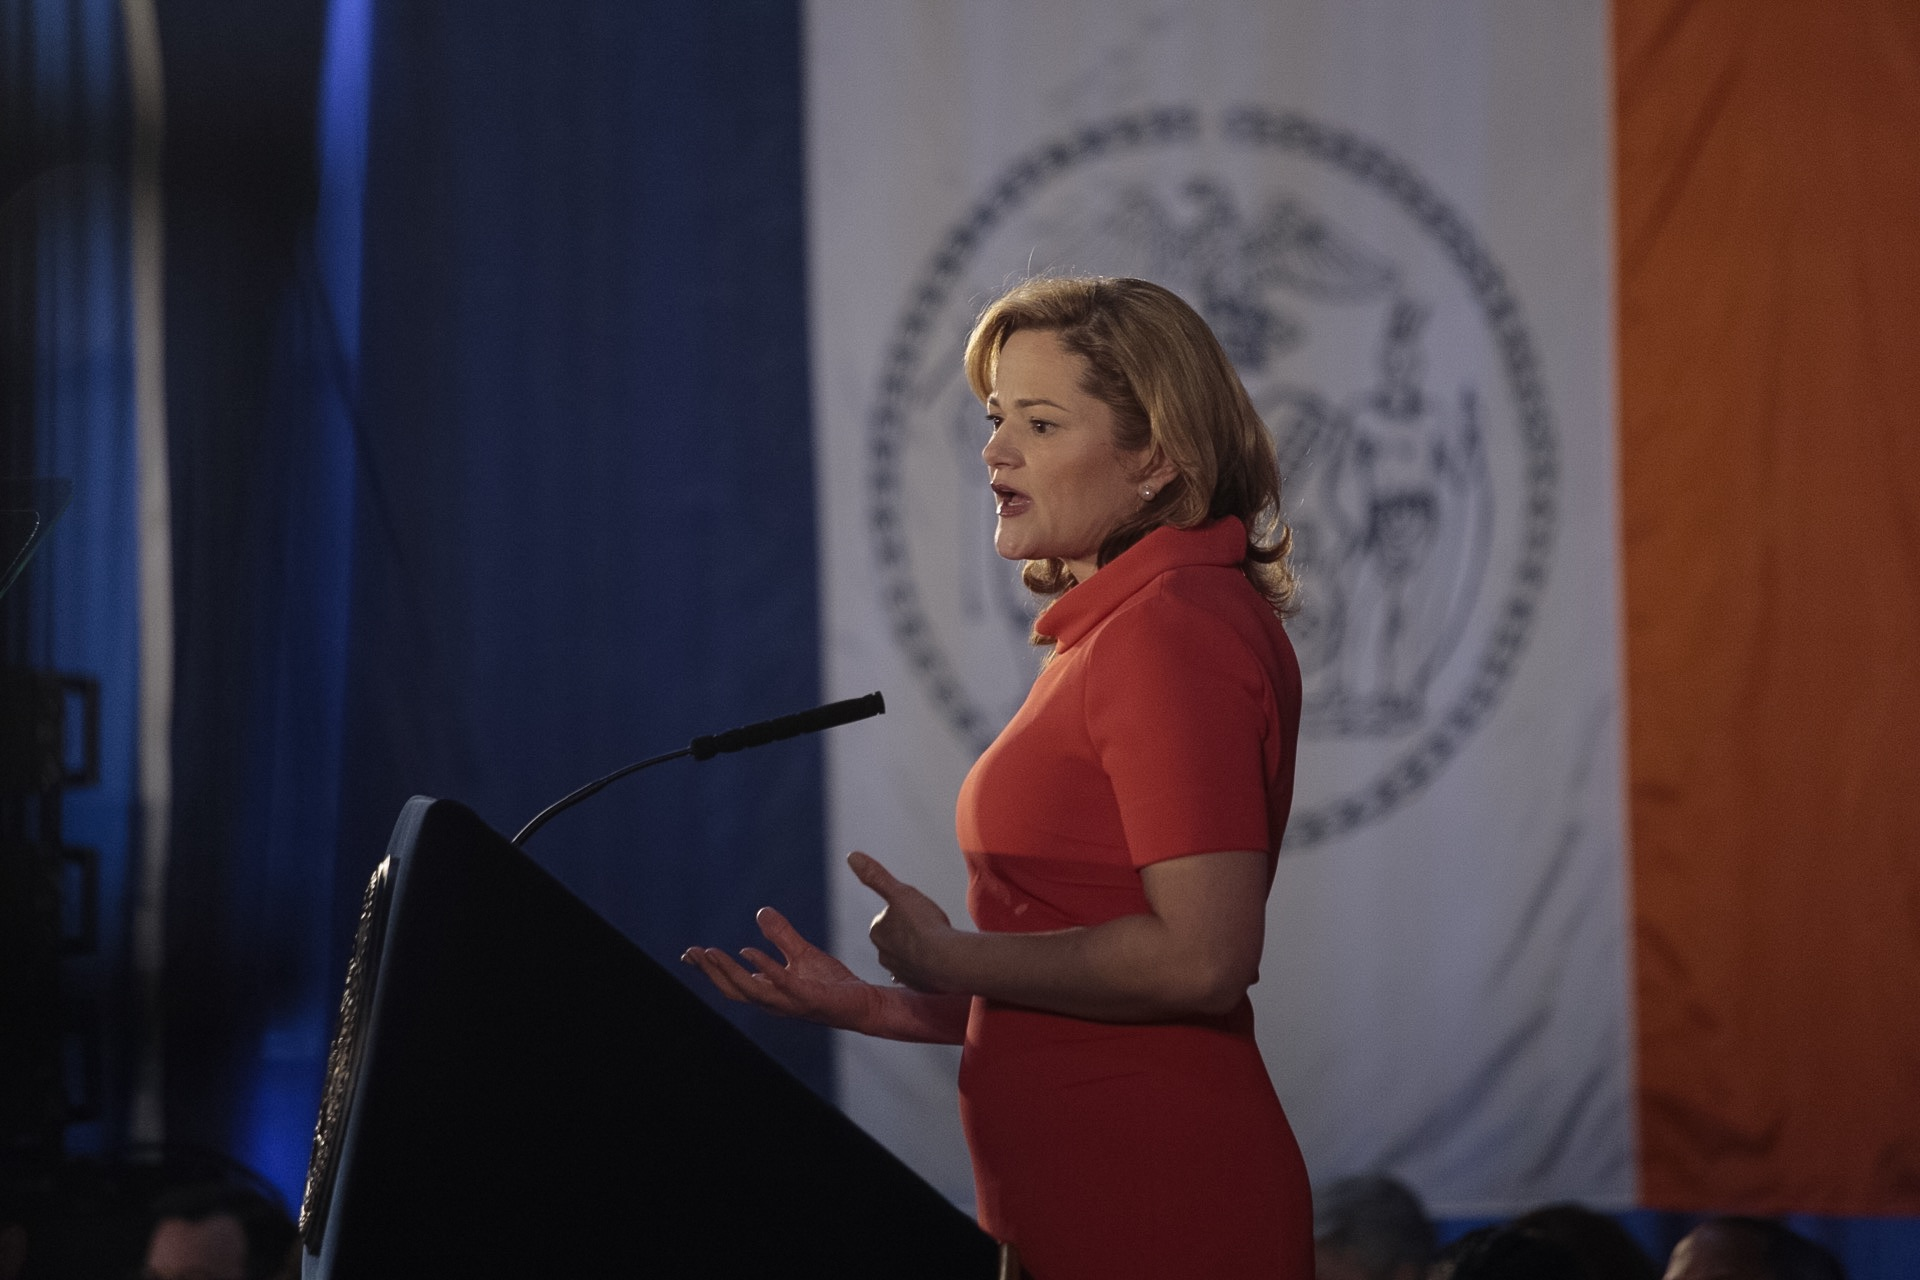 Council Speaker Melissa Mark-Viverito at last year's speech. (Photo: William Alatriste for New York City Council)